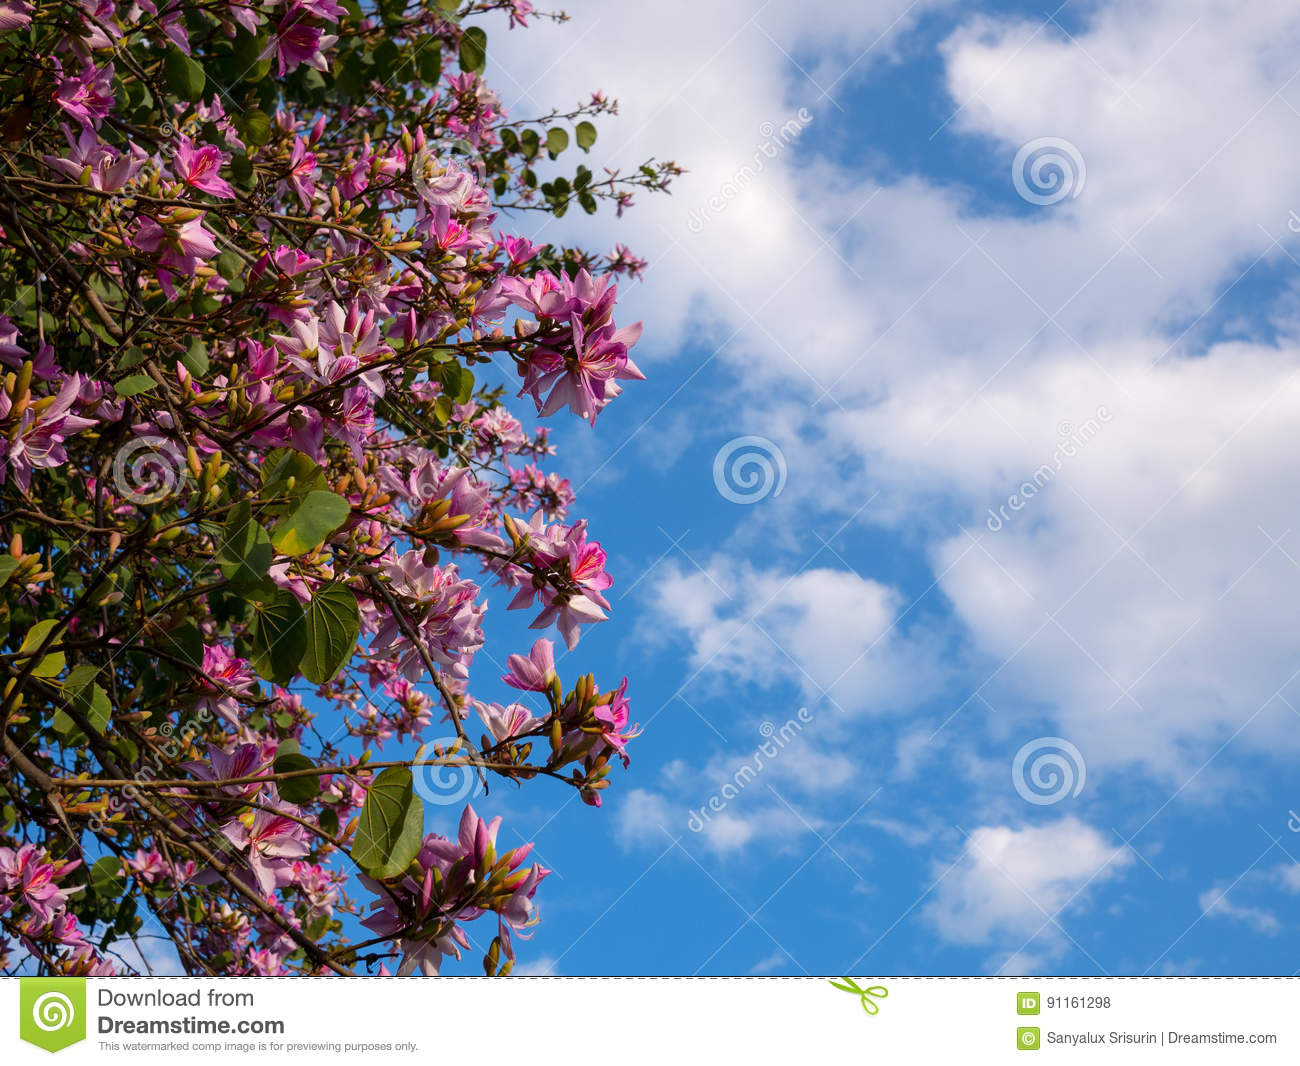 Pink flowers on acacia tree with blue sky stock photo image of download pink flowers on acacia tree with blue sky stock photo image of pink izmirmasajfo